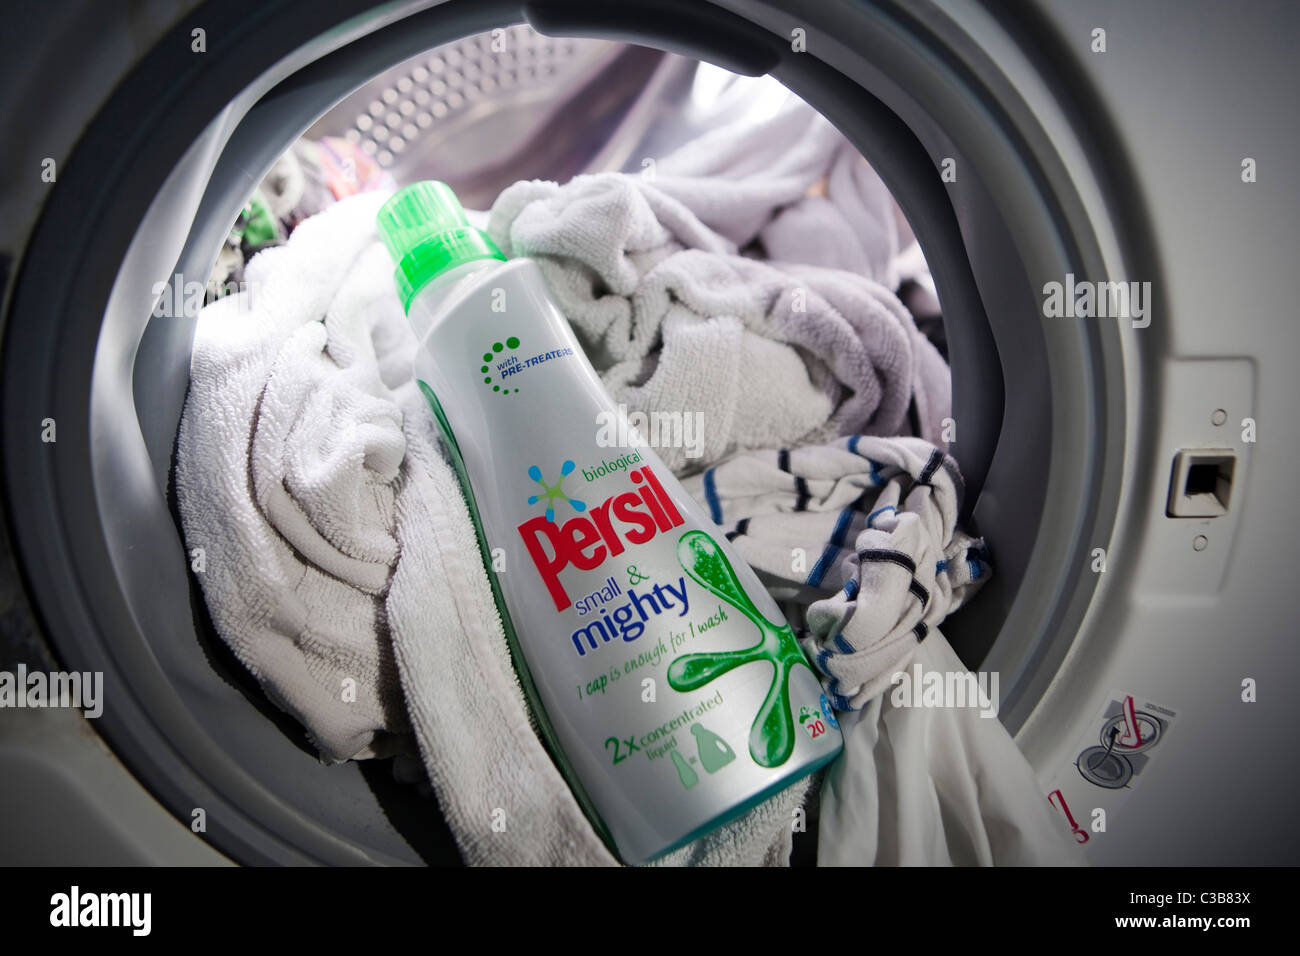 Illustrative image of a bottle of Persil small and mighty. A Unilever brand. - Stock Image